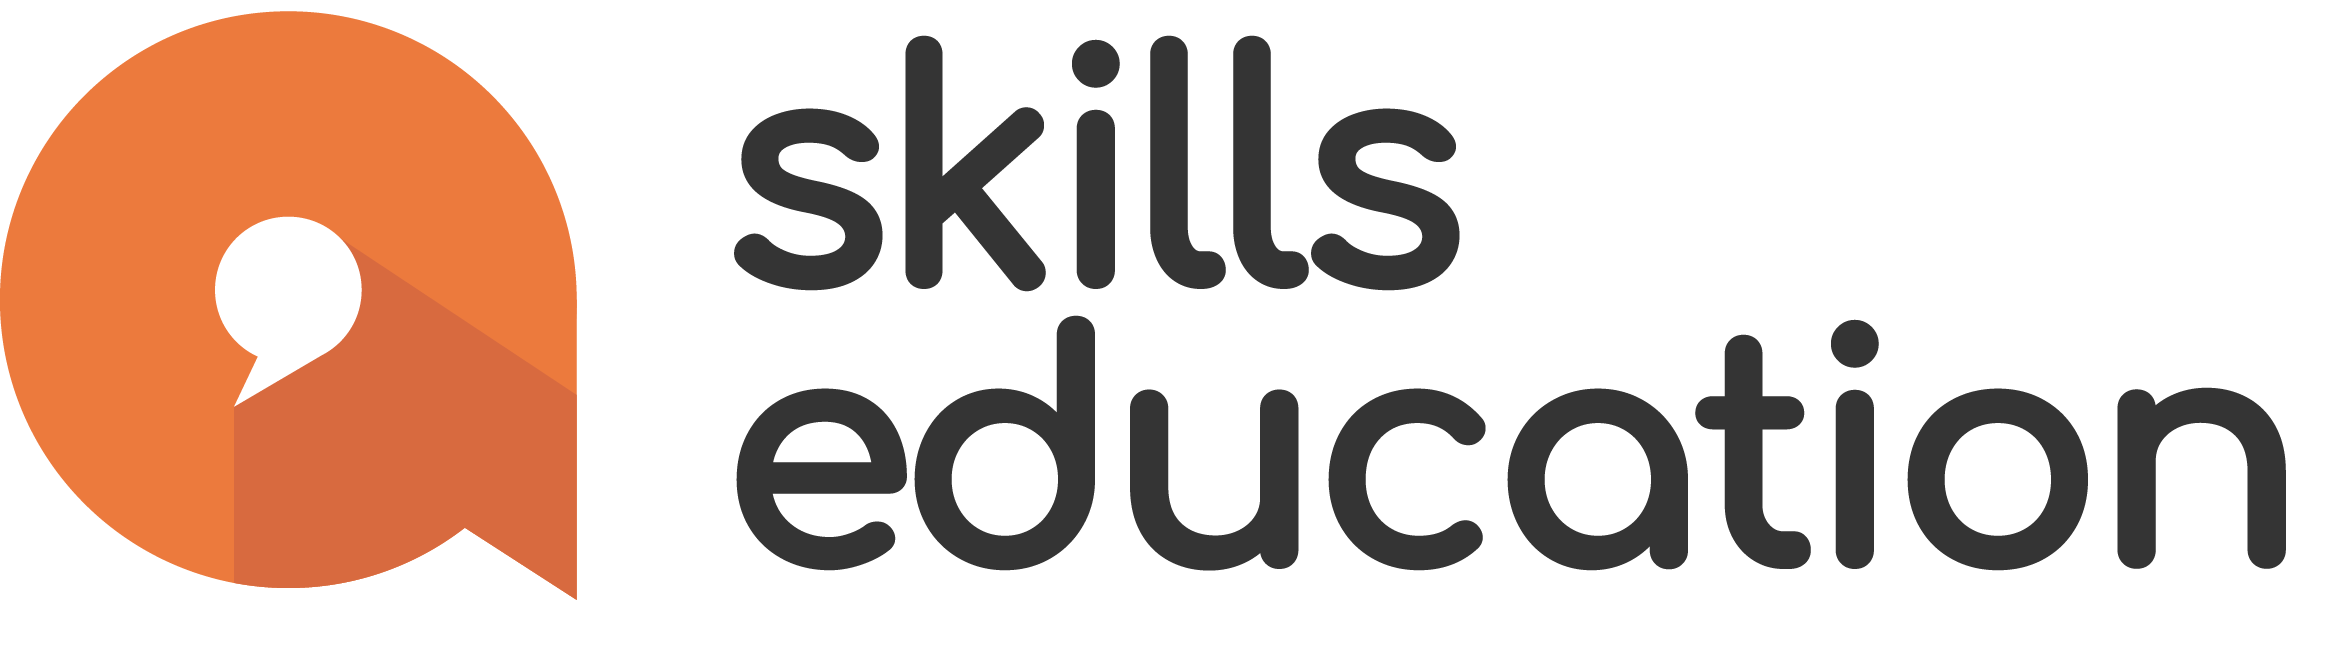 Professional Development Company logo